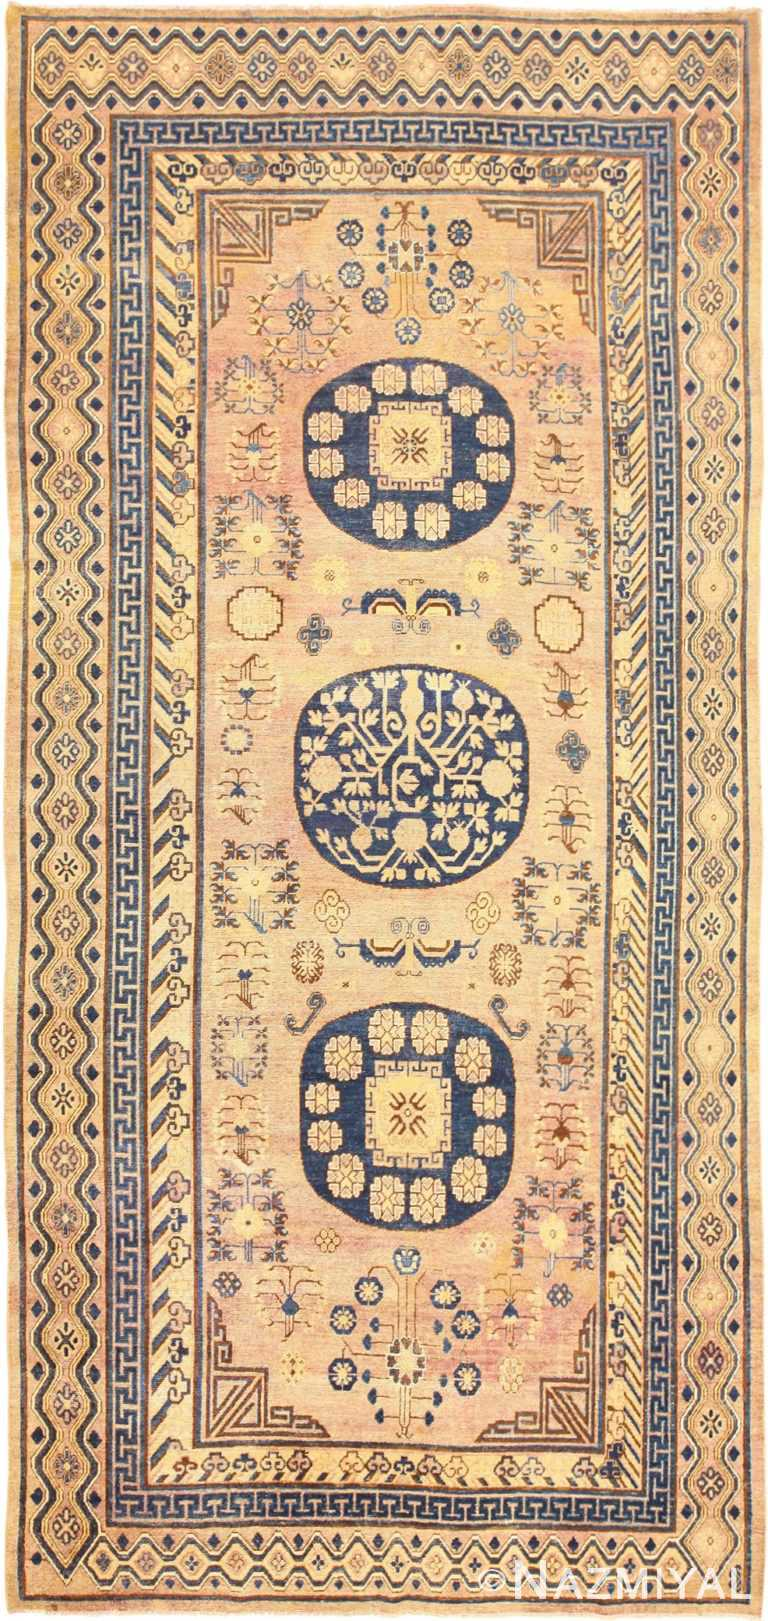 Antique Soft Color Khotan Area Rug #49047 by Nazmiyal Antique Rugs